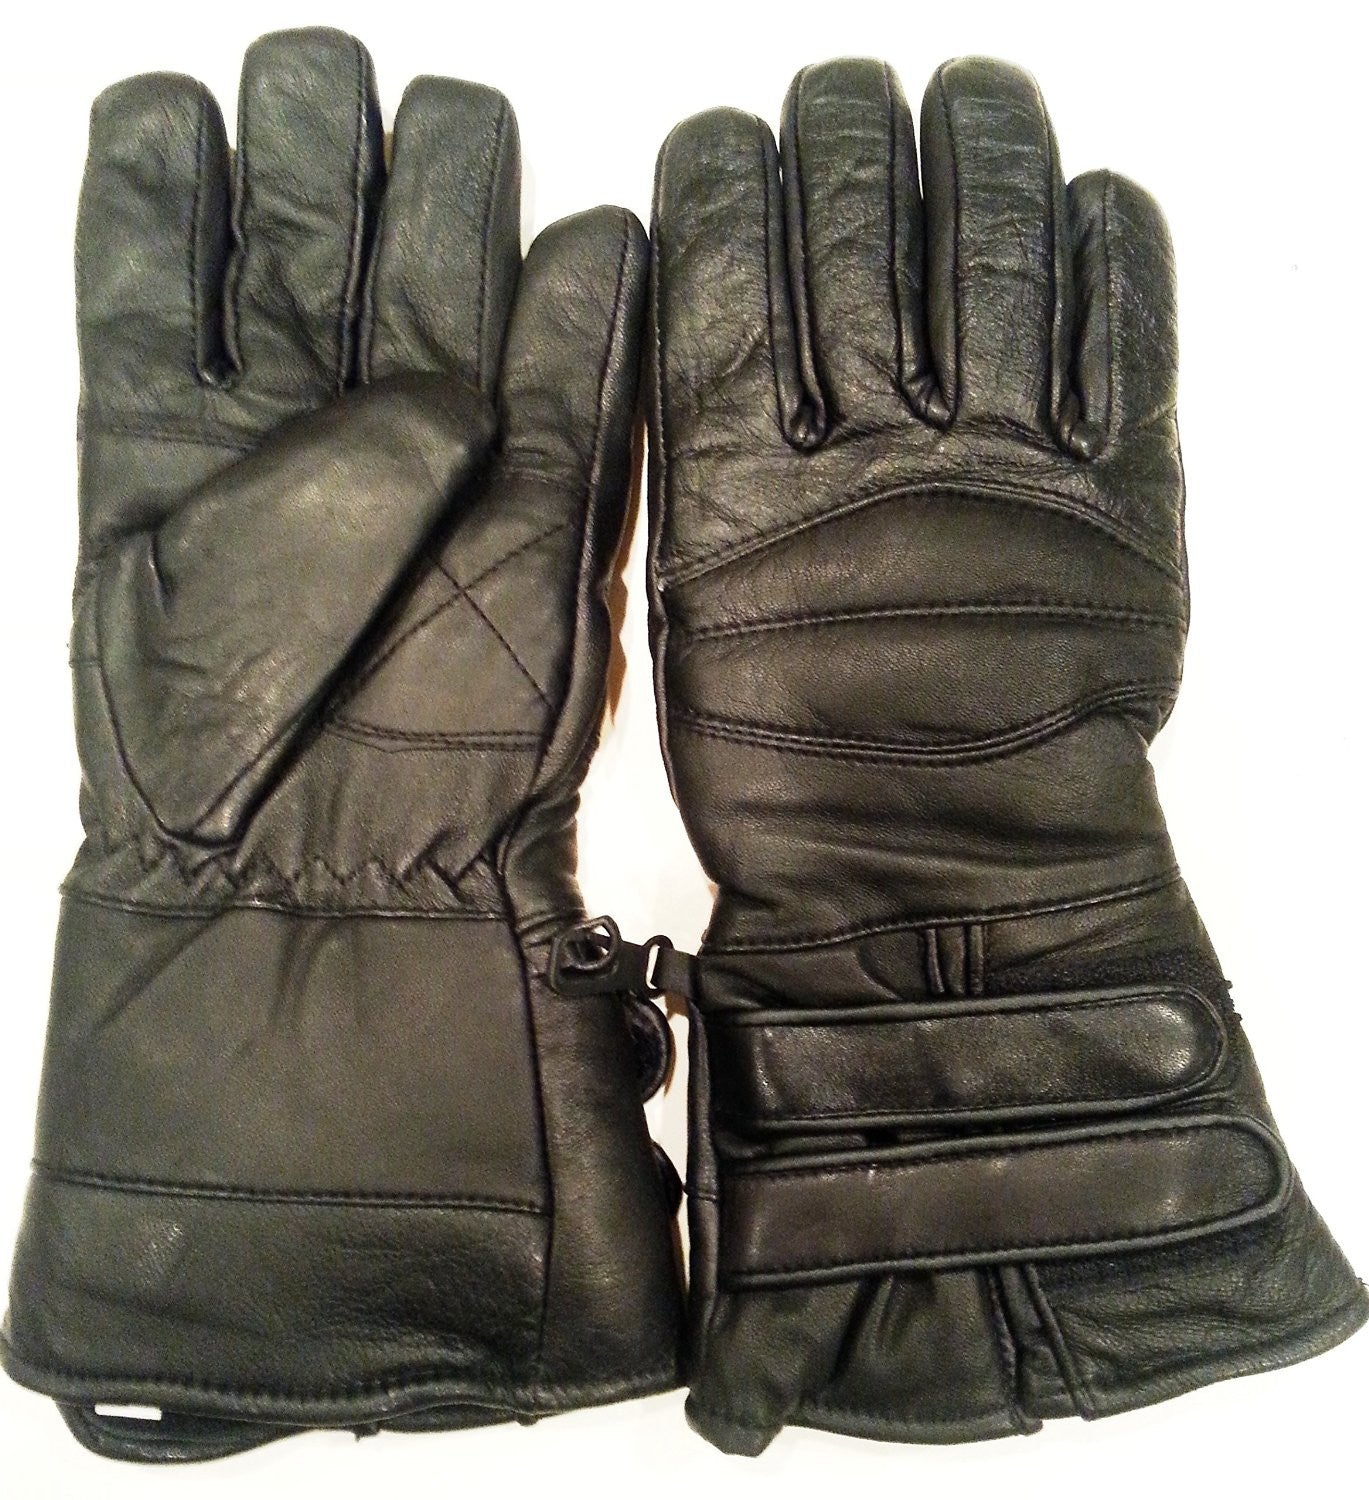 Insulated leather motorcycle gloves - Black Leather Motorcycle Waterproof Insulated Unisex Cold Weather Year The Nekid Cow